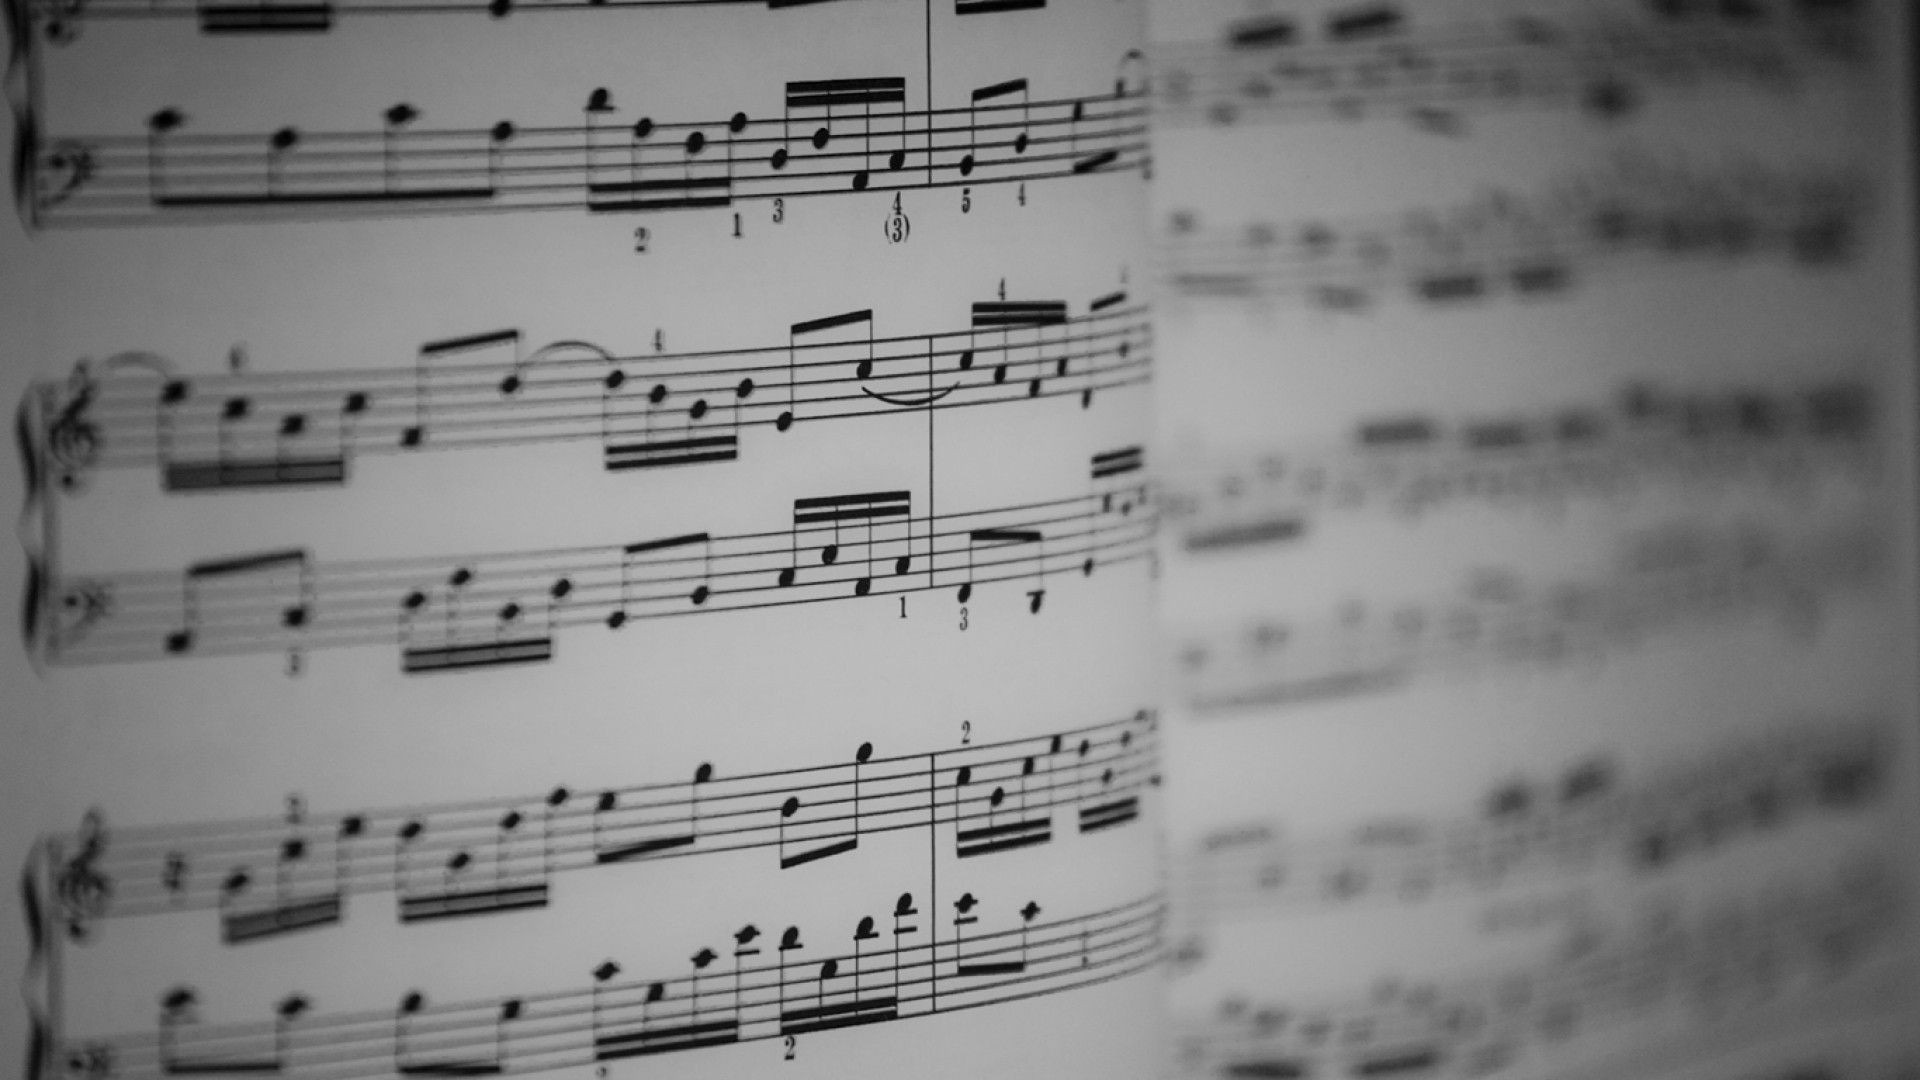 Sheet music background download free awesome full hd - Wallpaper 1920x1080 music ...